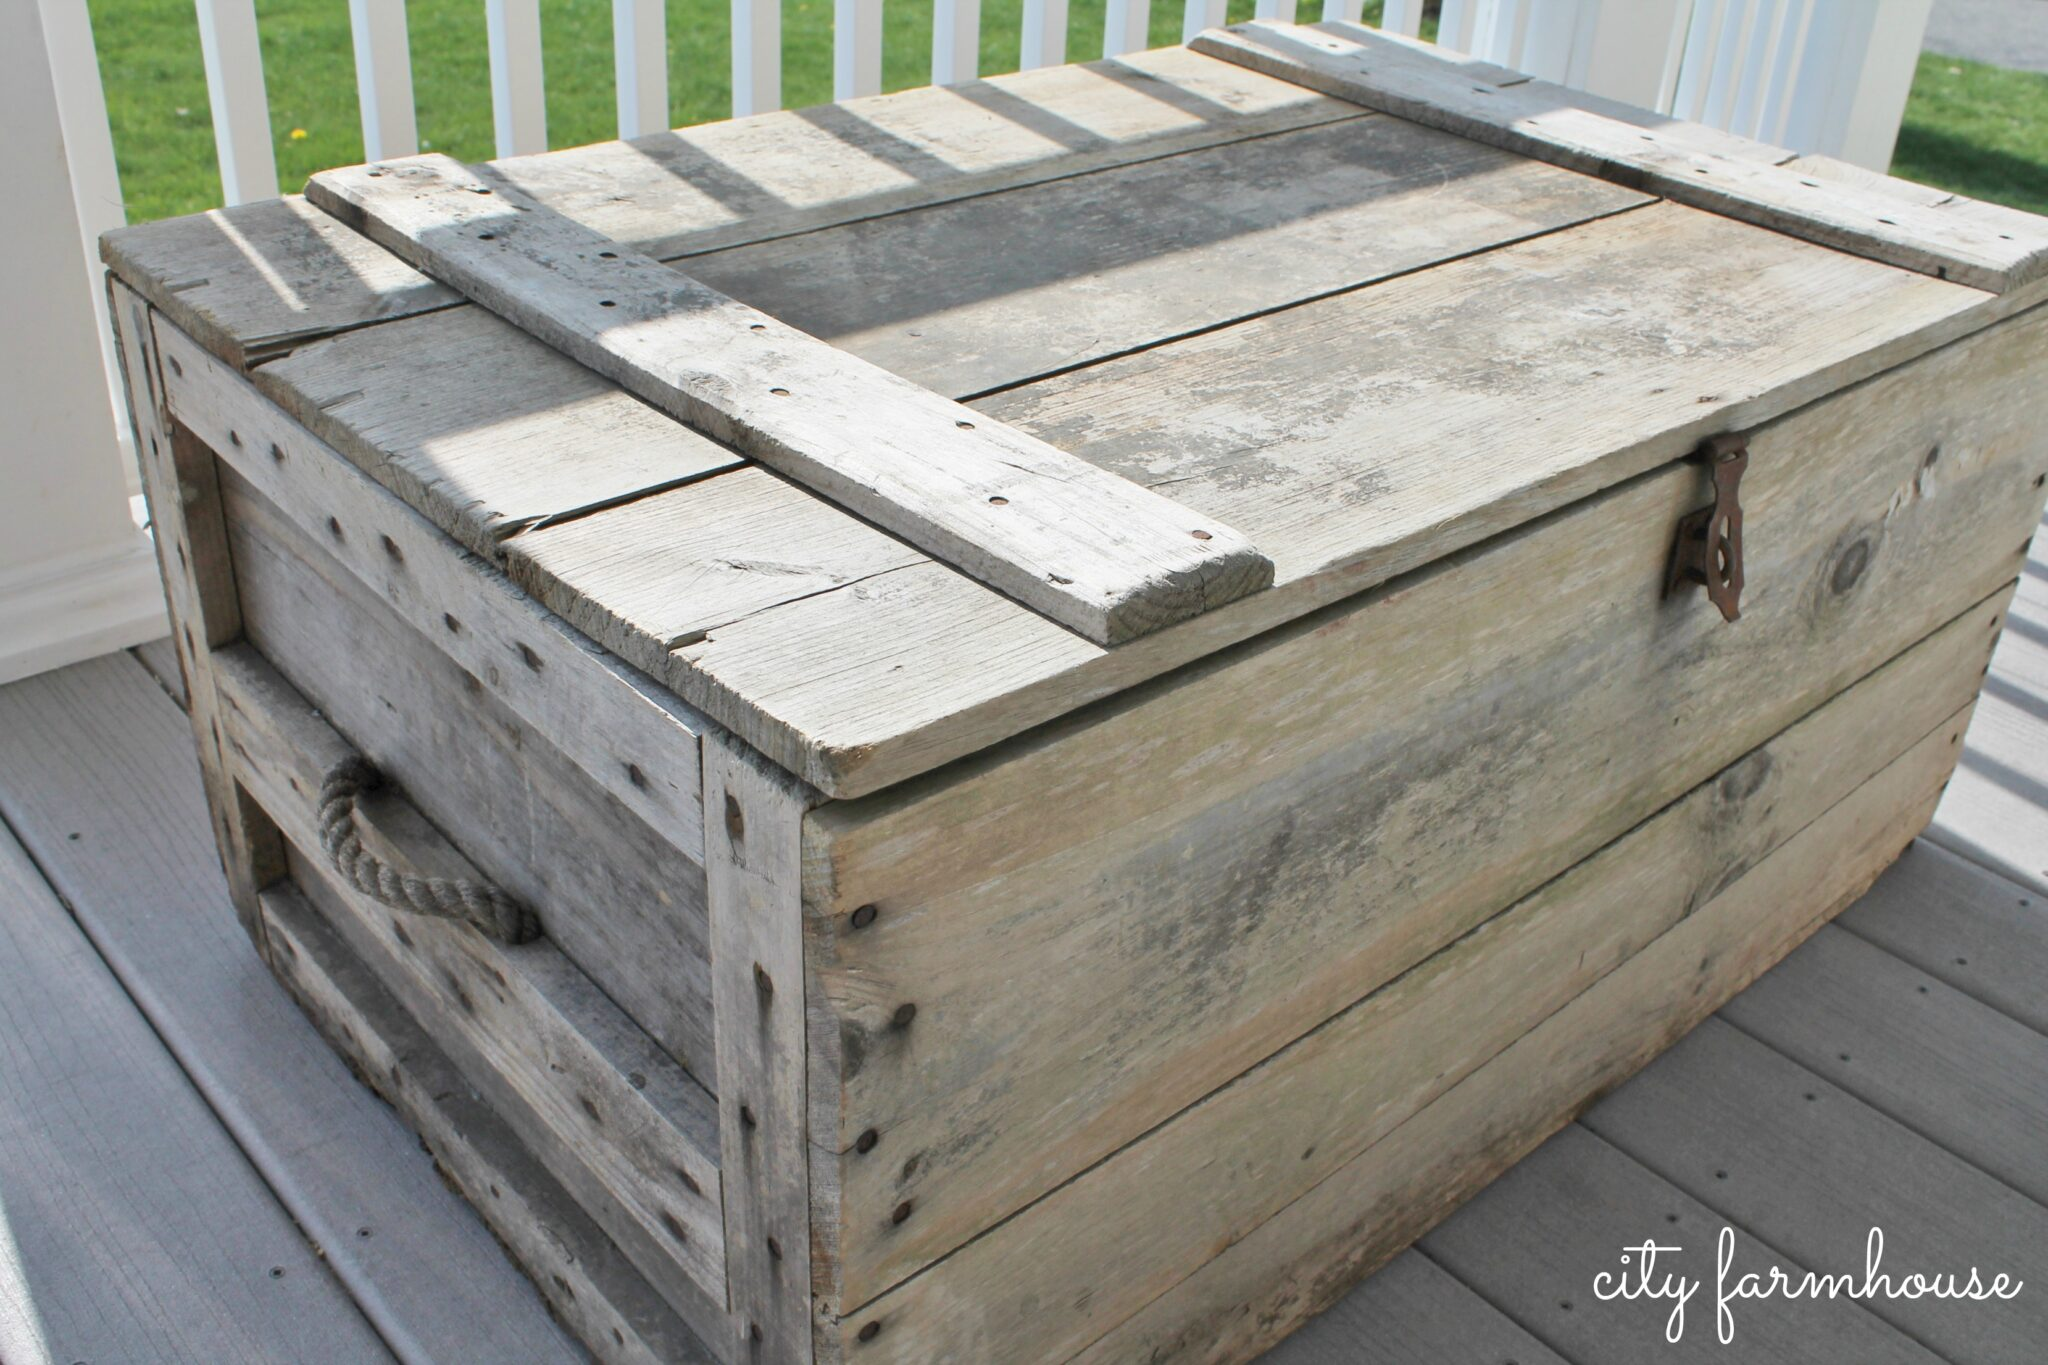 How To Turn A Vintage Crate Into A Coffee Table With Casters And